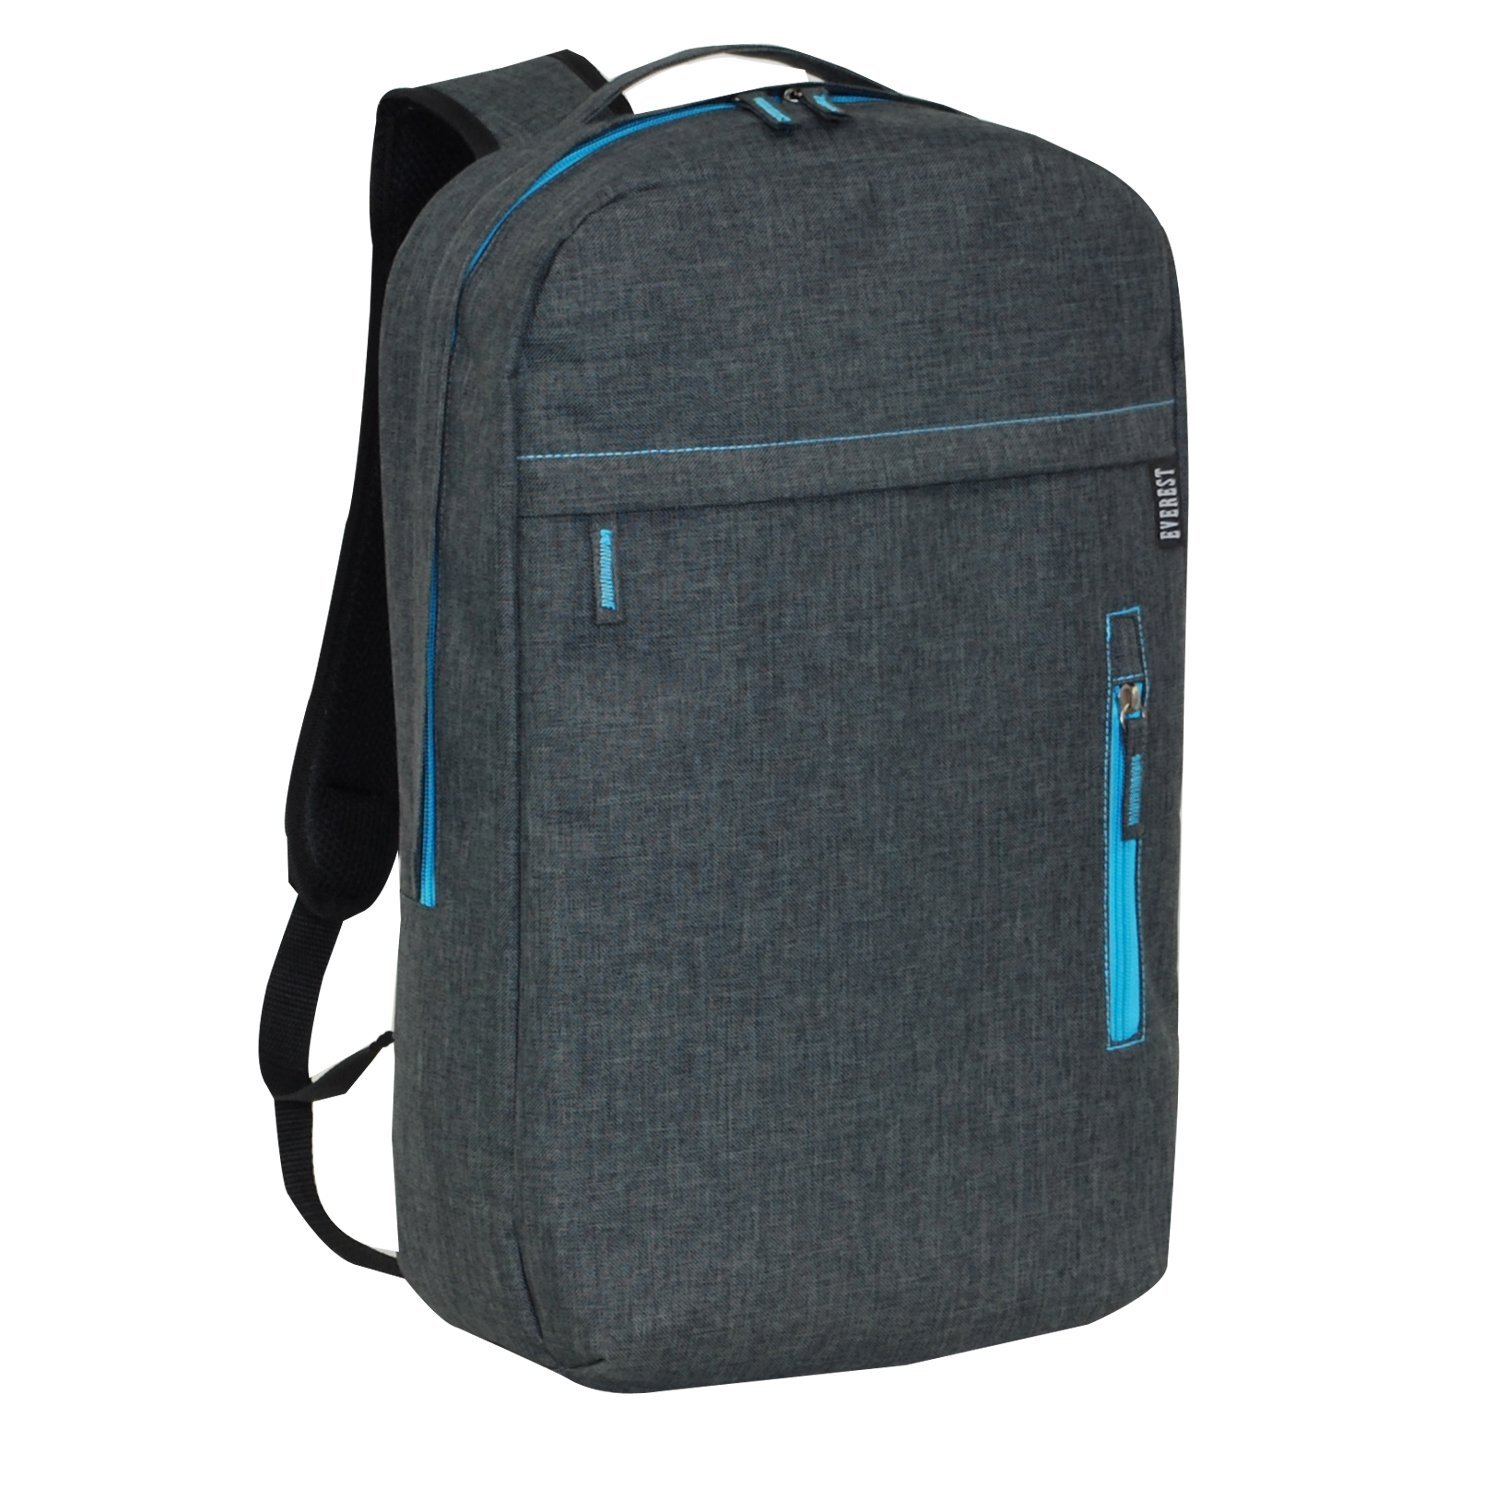 Everest Trendy Lightweight Laptop Backpack, Charcoal, One Size by Everest